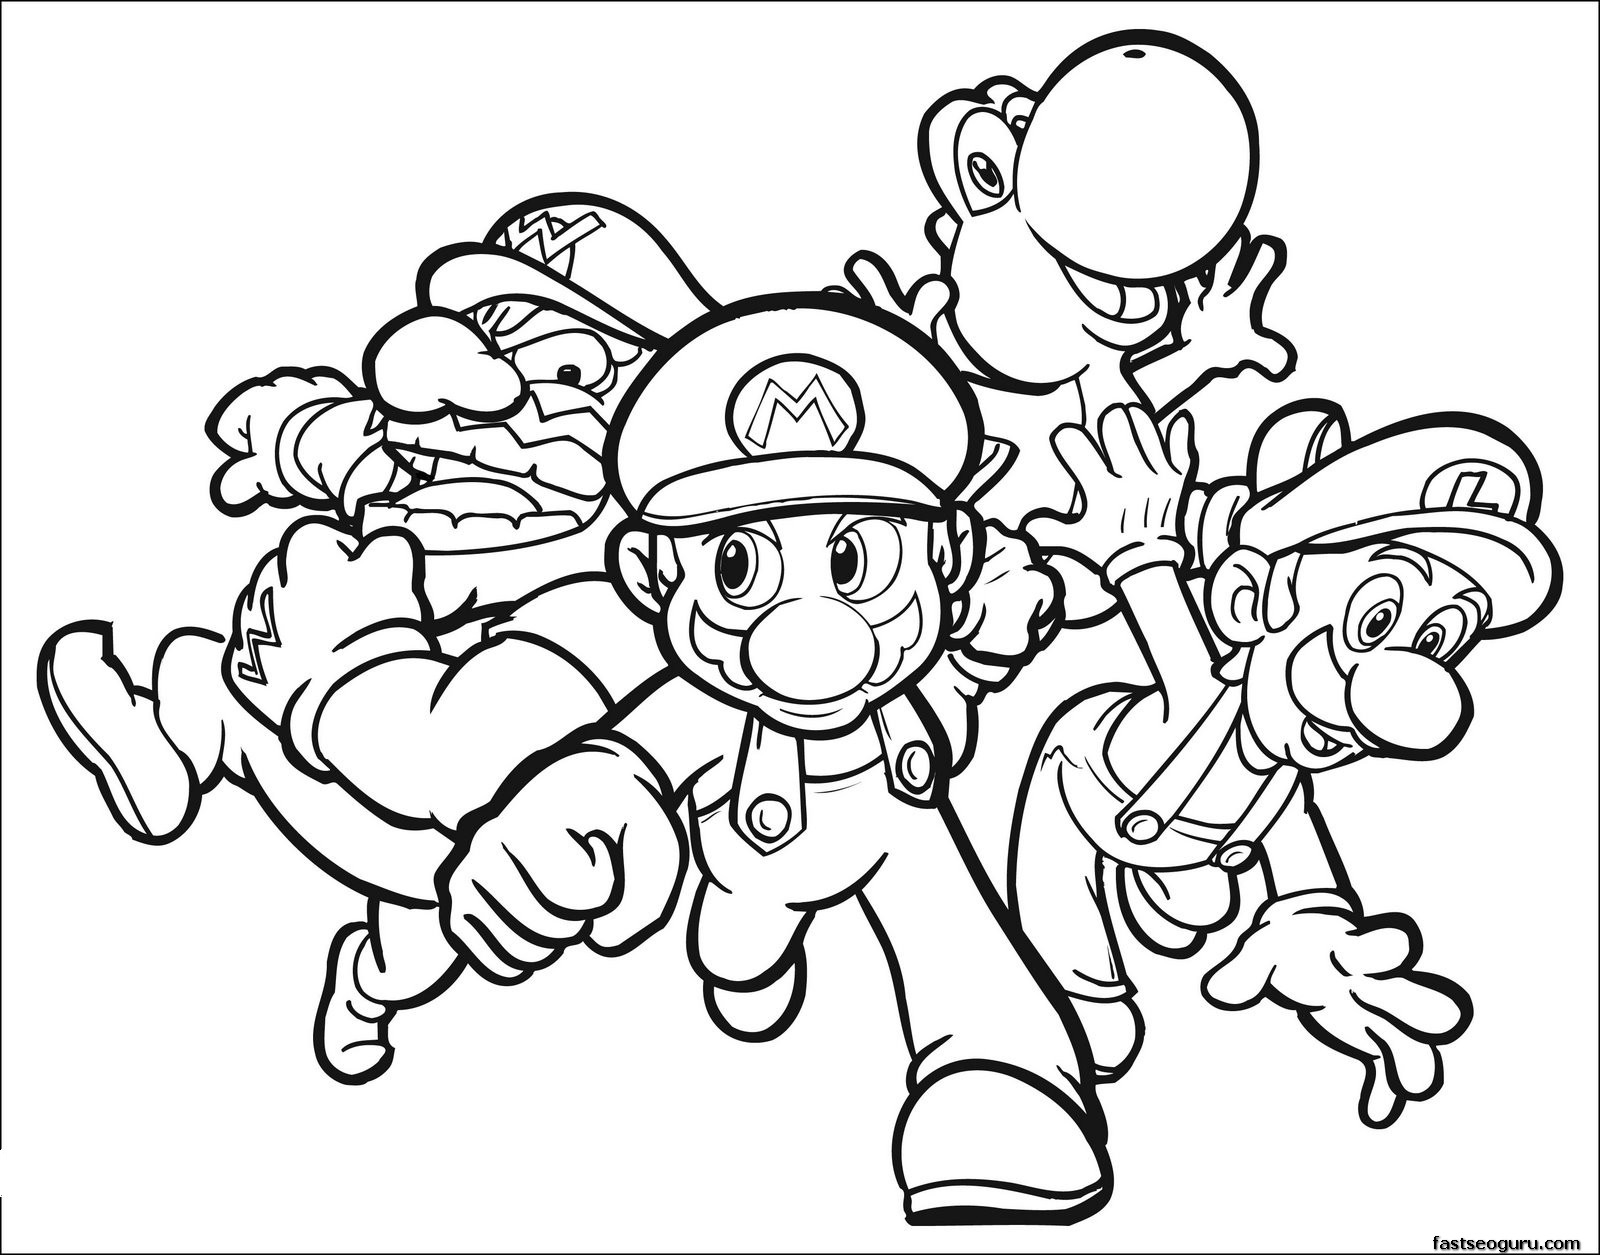 Coloring Pages Free Coloring Pages To Print Out print free coloring pages futpal com disney only pages